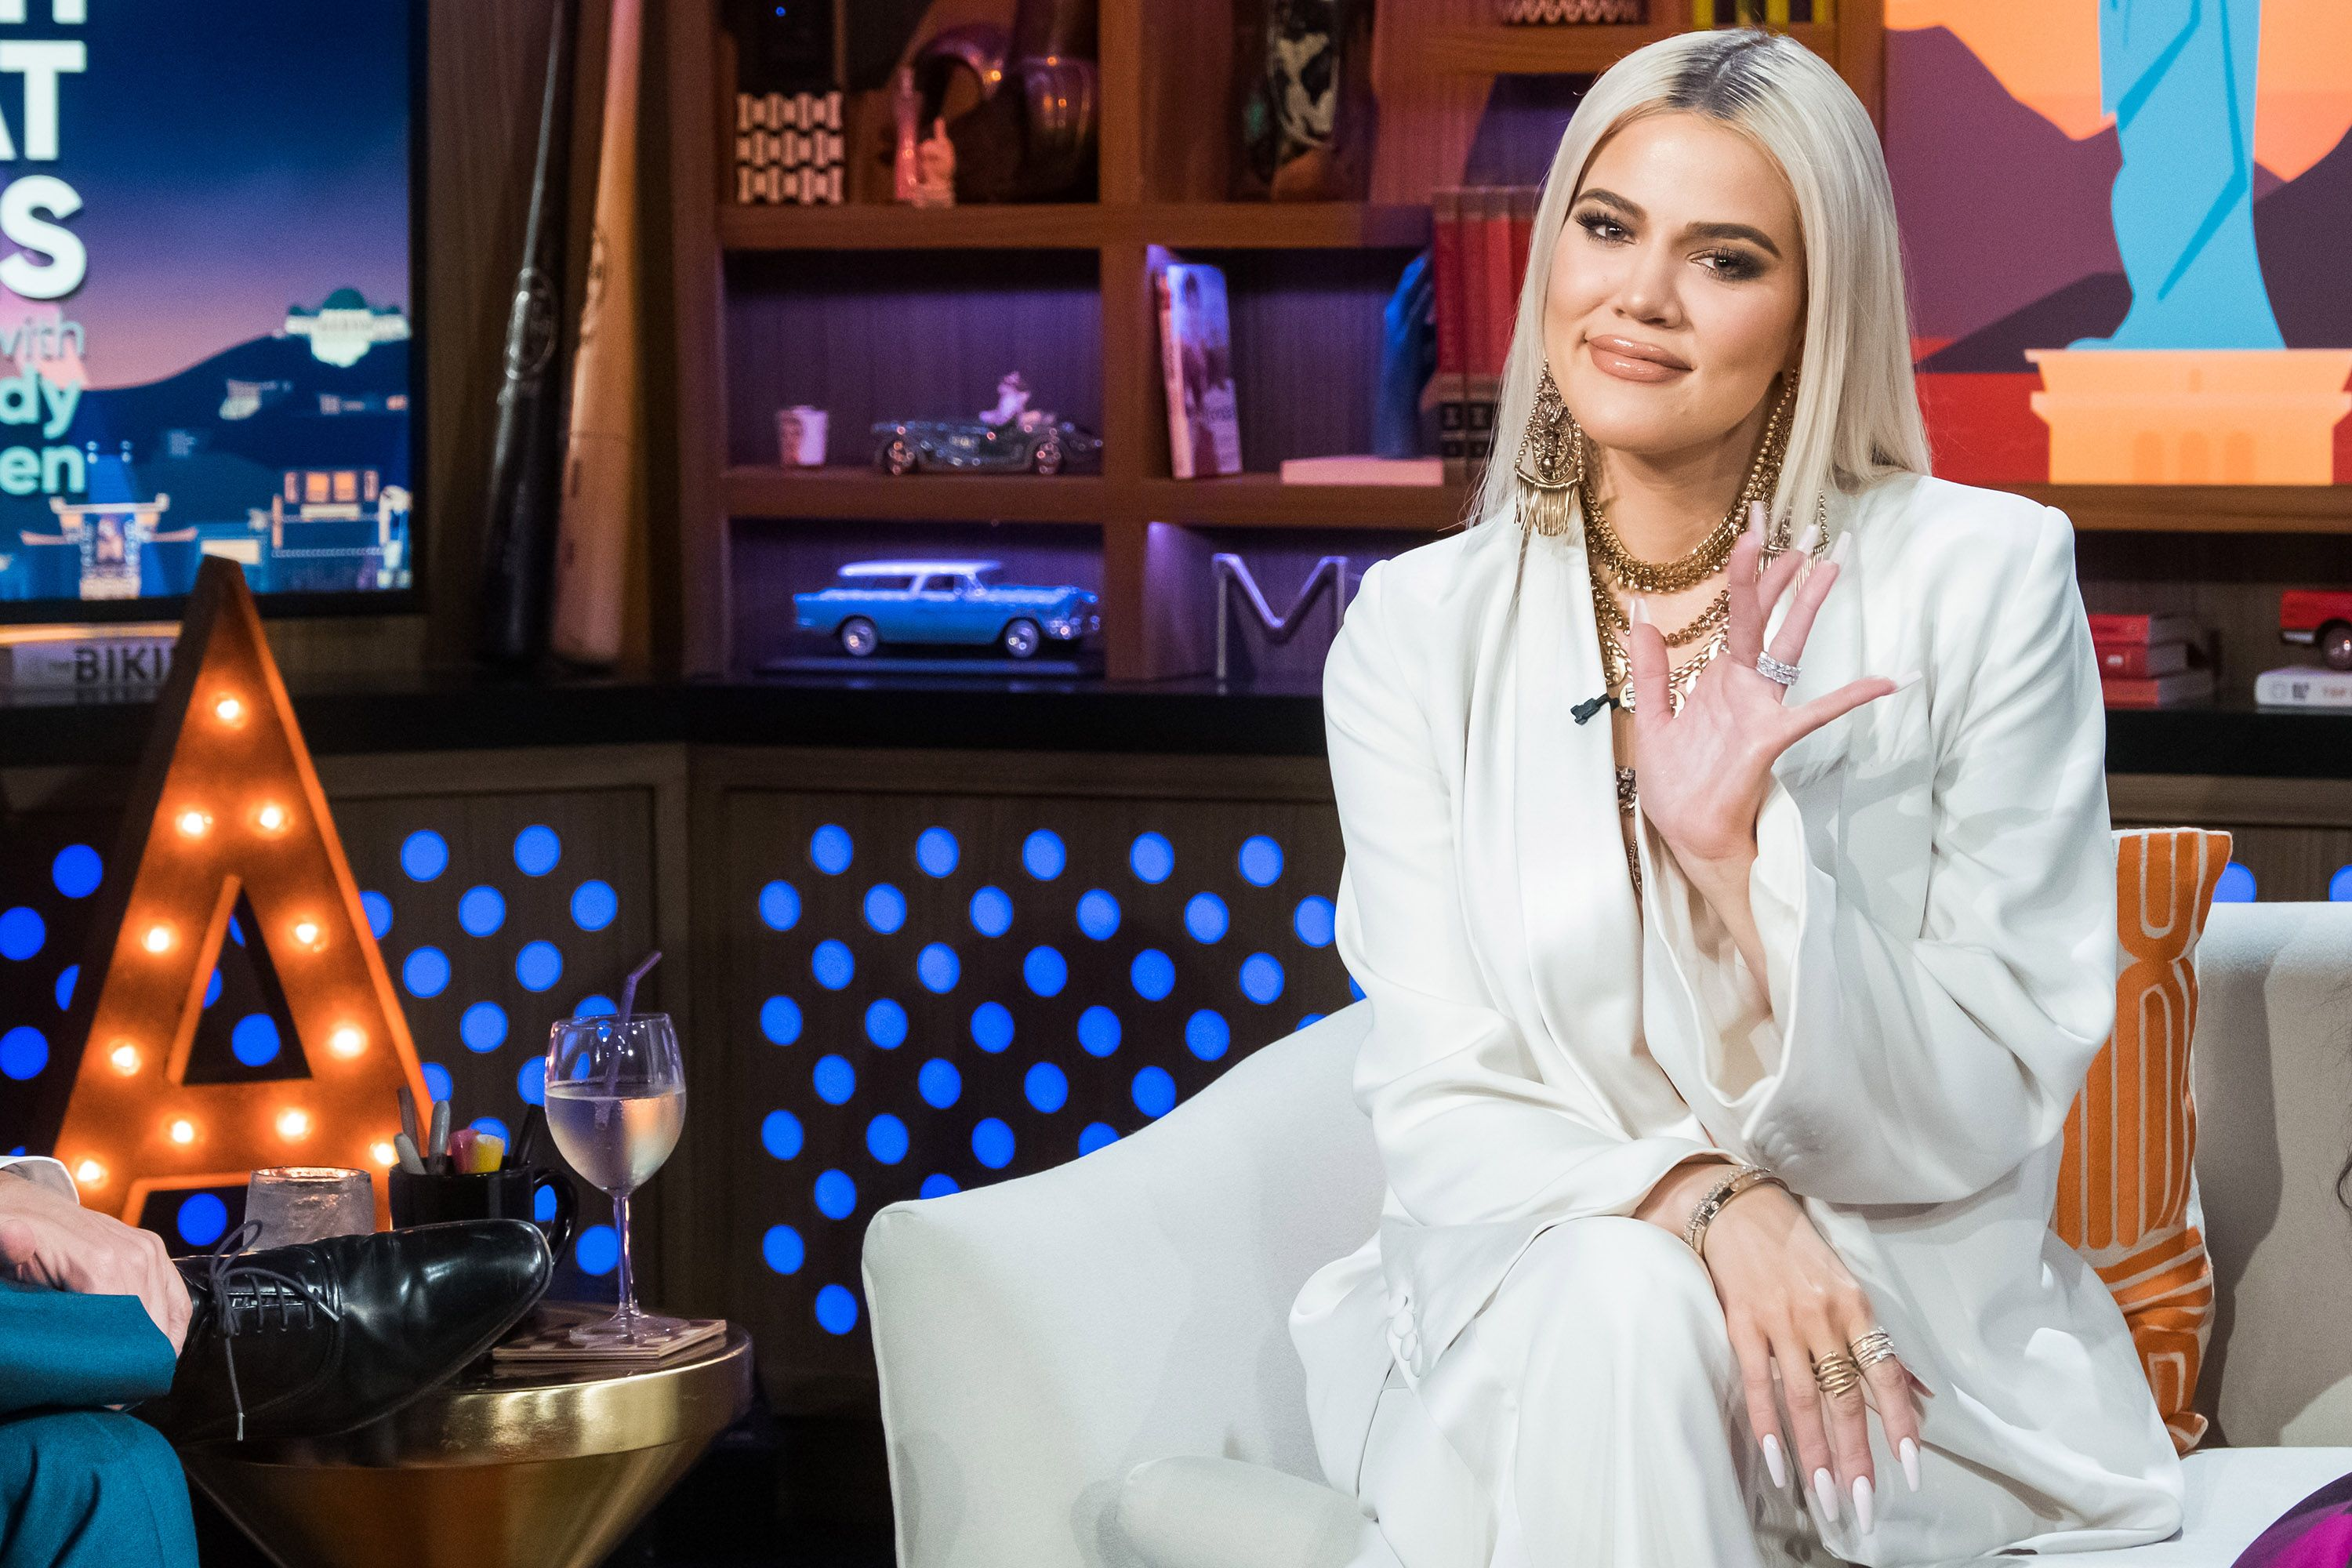 Khloé Kardashian Said Co-Parenting With Tristan Thompson Sucks But He's a 'Great Person'